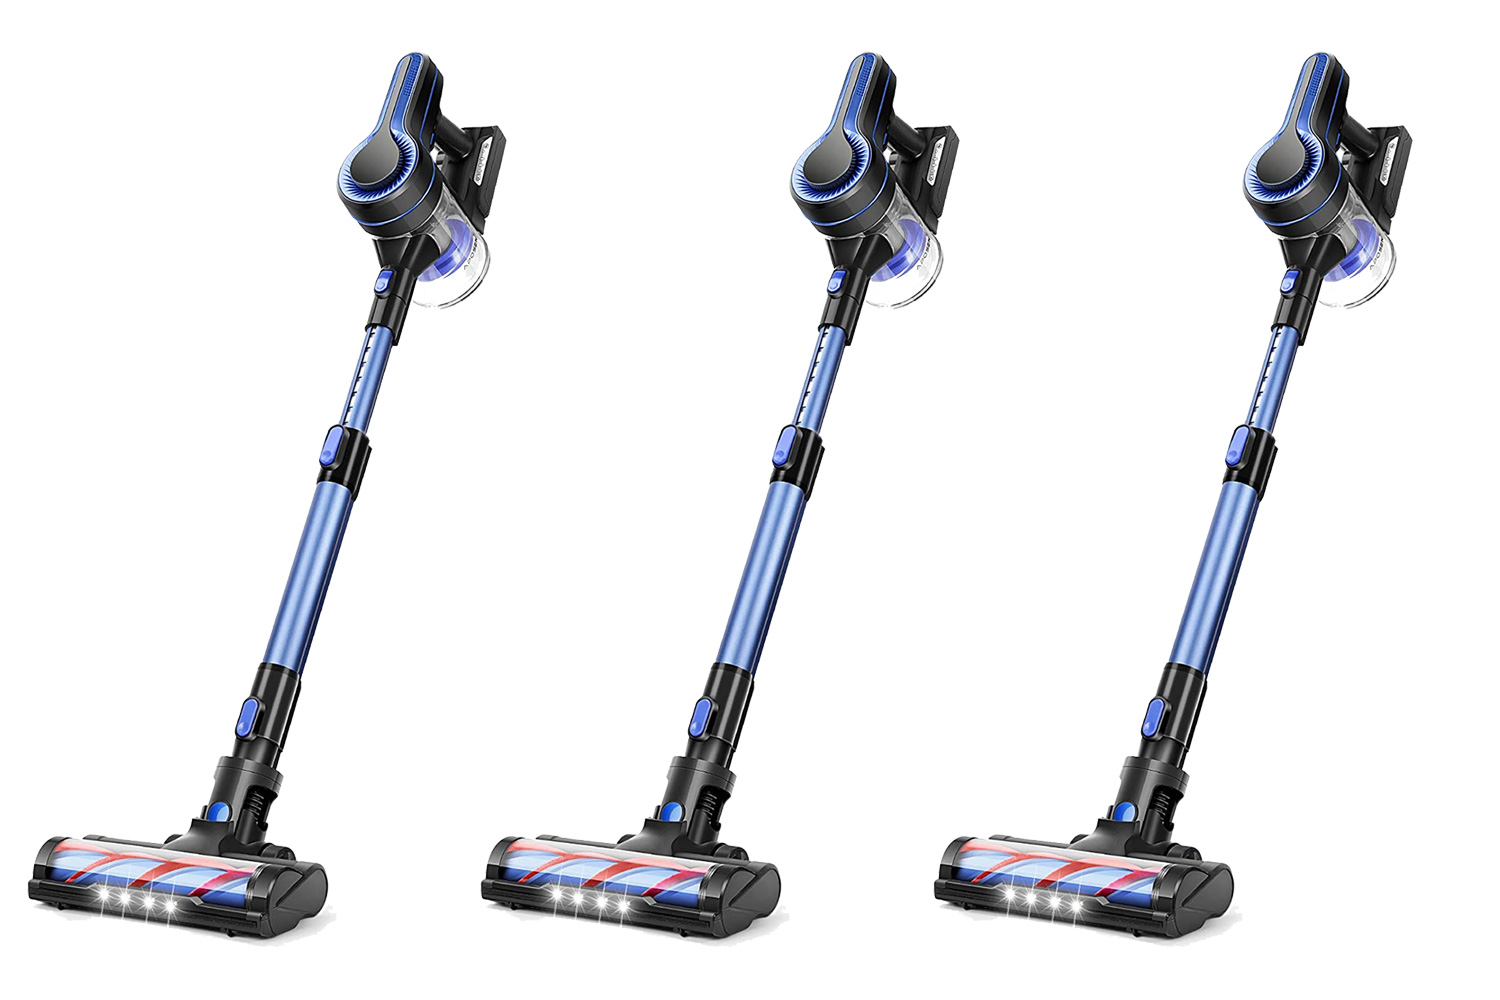 APOSEN Cordless Vacuum Cleaner, 24KPa Powerful Suction 250W Brushless Motor 4 in 1 Stick Vacuum for Home Hard Floor Carpet Car Pet H250 Blue